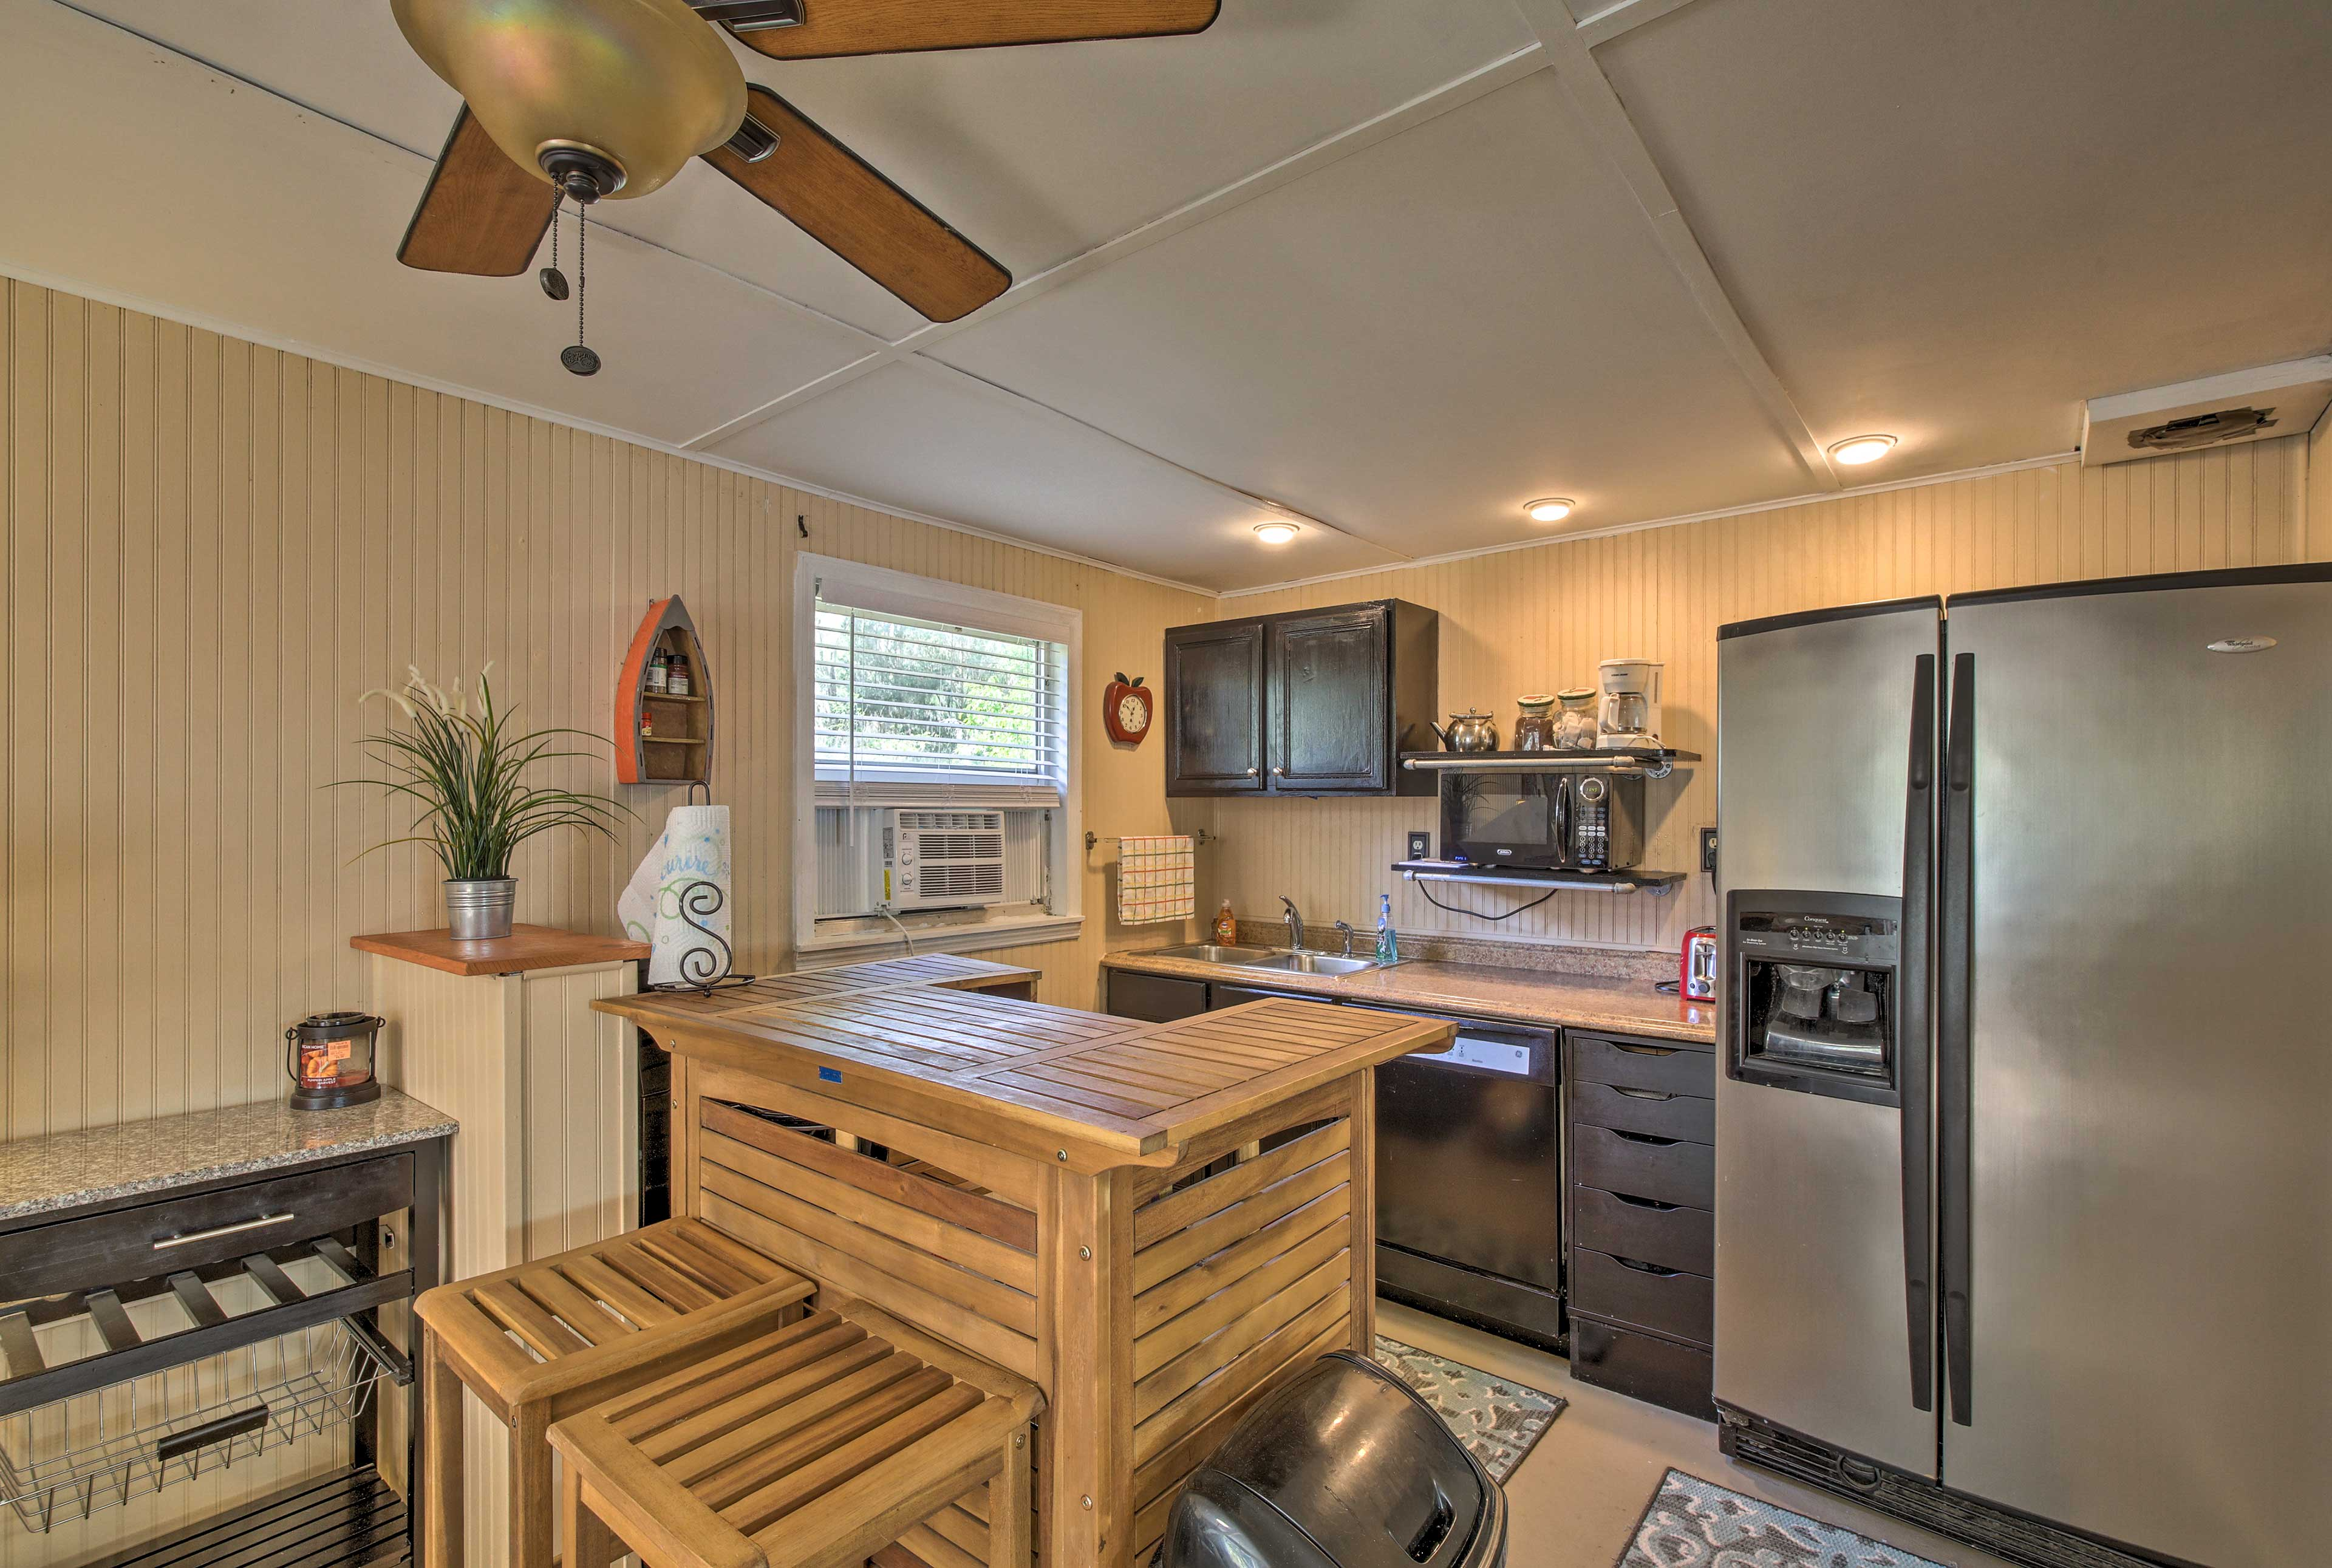 The well-equipped kitchenette has all you need to make snacks during your stay.